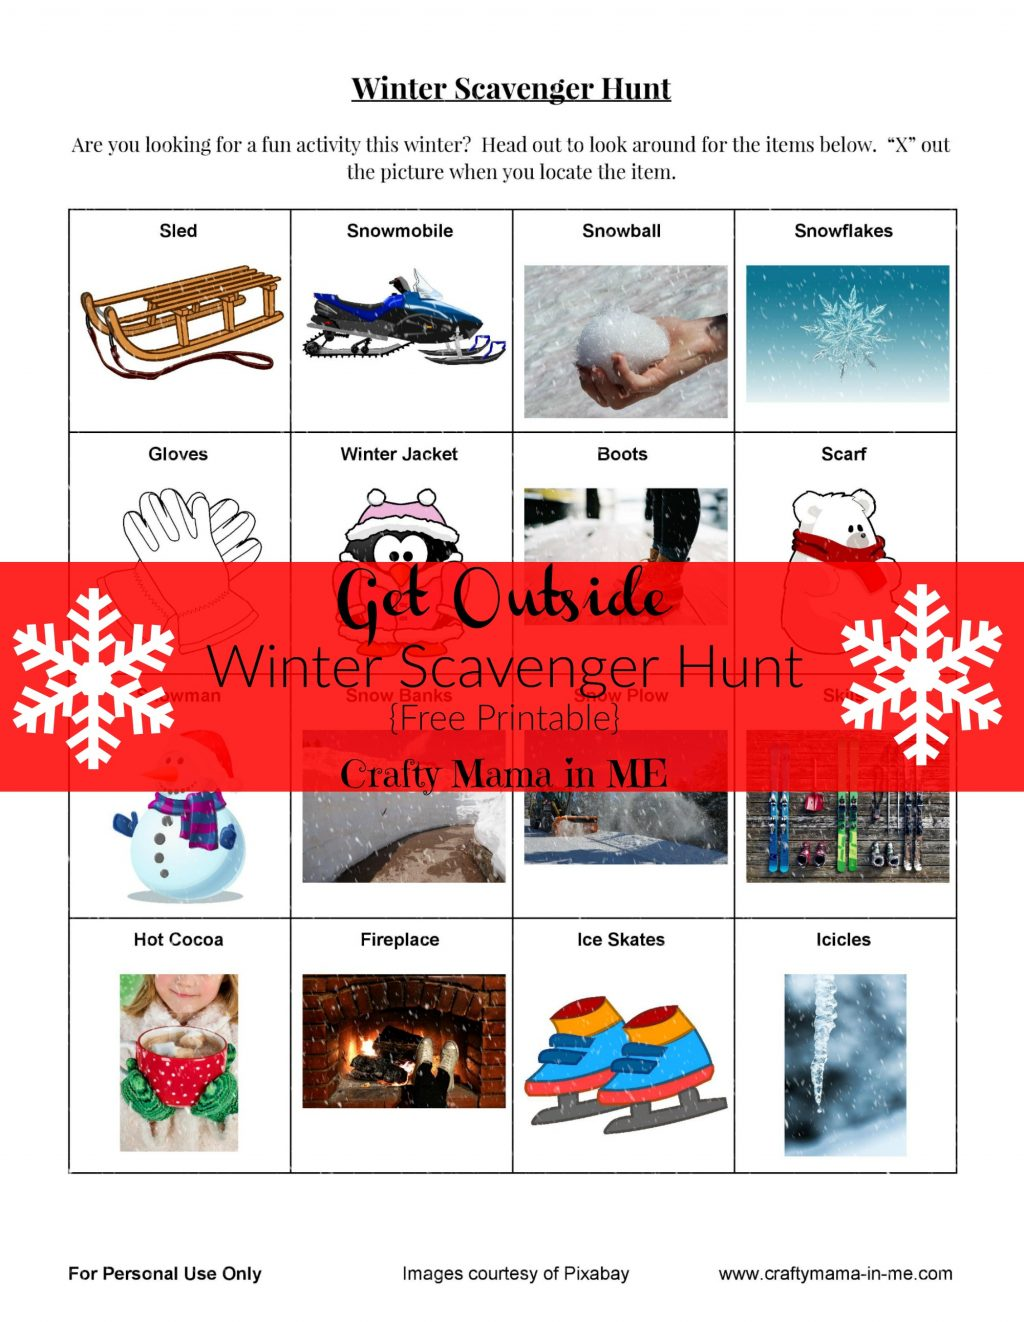 Get Outside with a Fun Winter Scavenger Hunt {Free Printable}